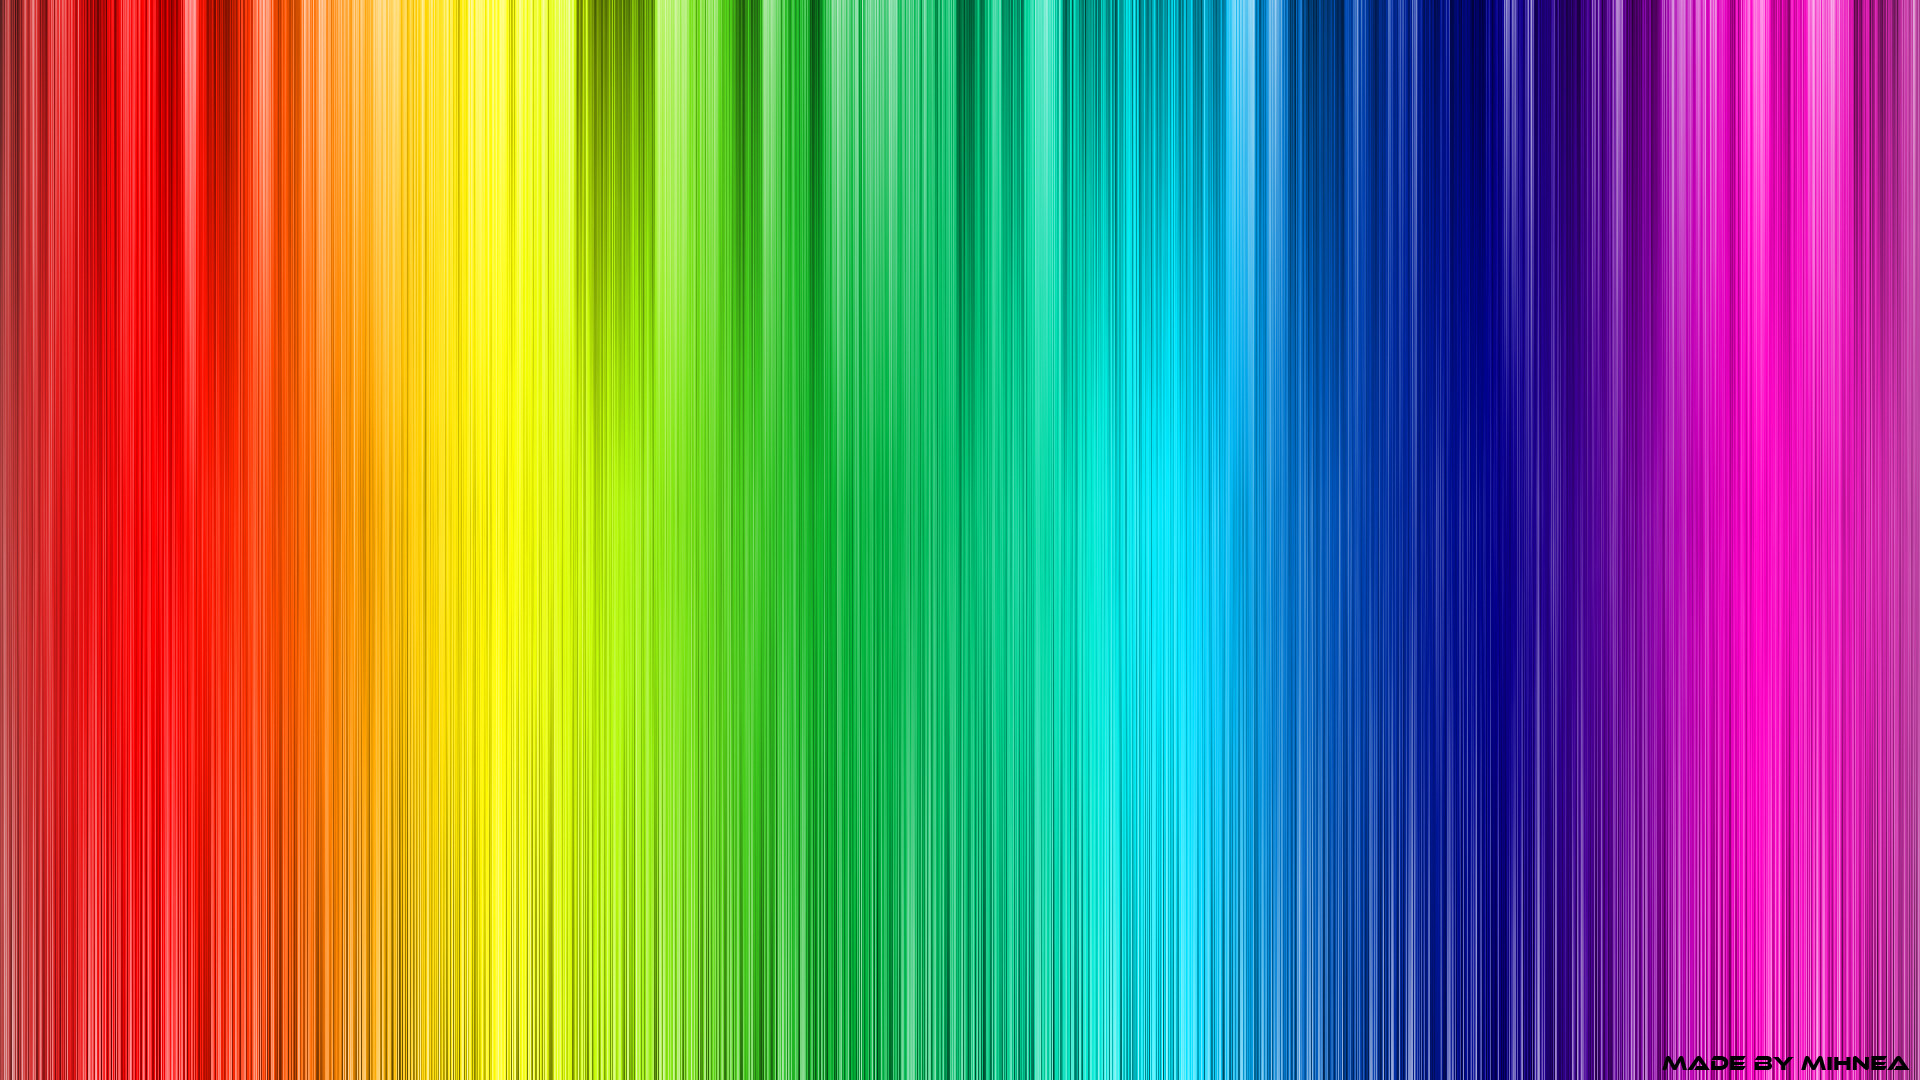 Multicolor Wallpapers 6 - 1920 X 1080 | stmed.net